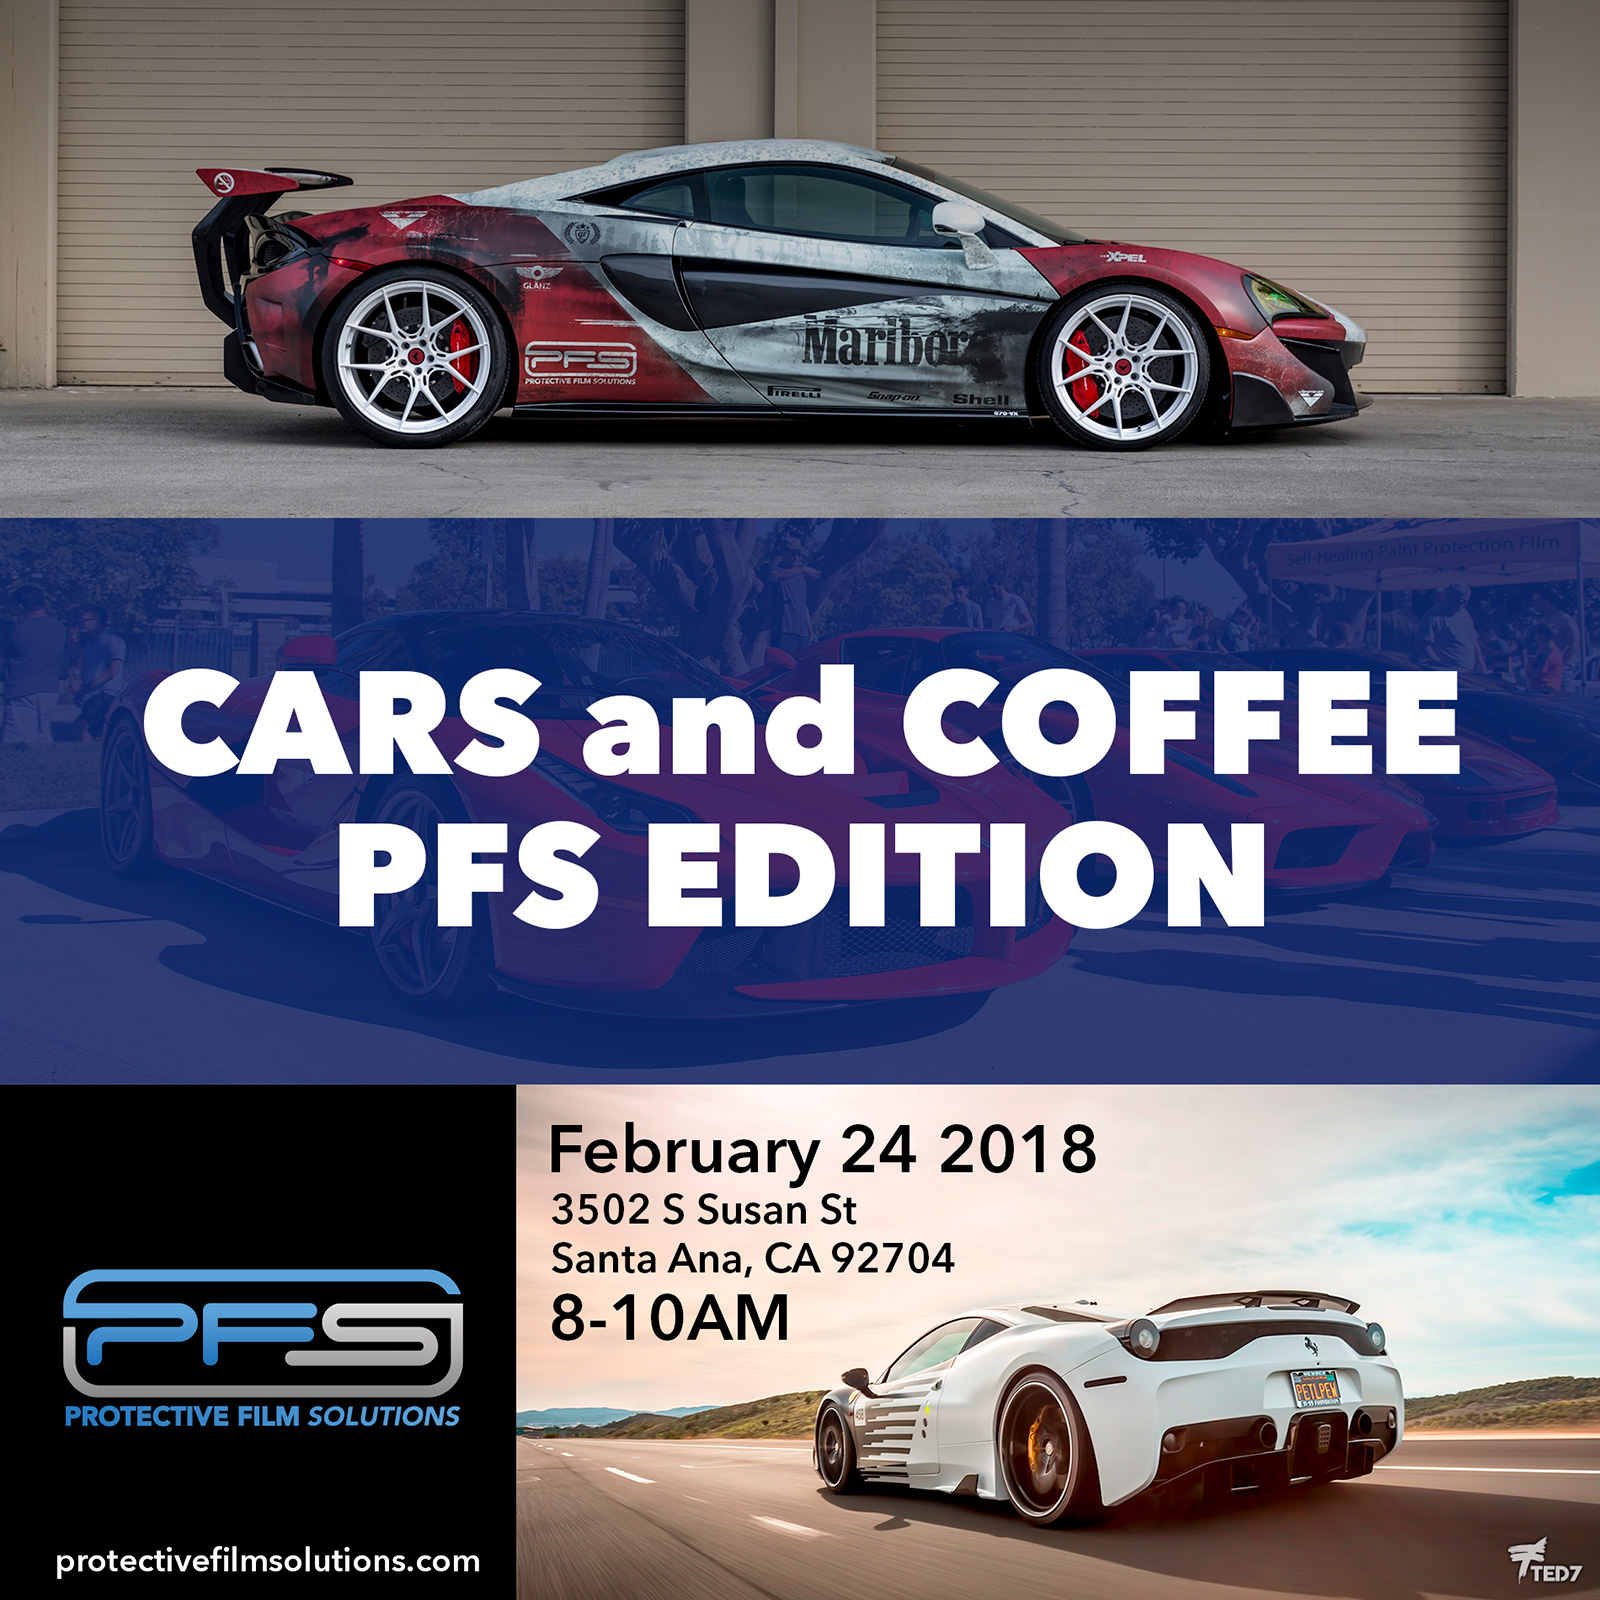 Cars and Coffee PFS Edition Square Flyer